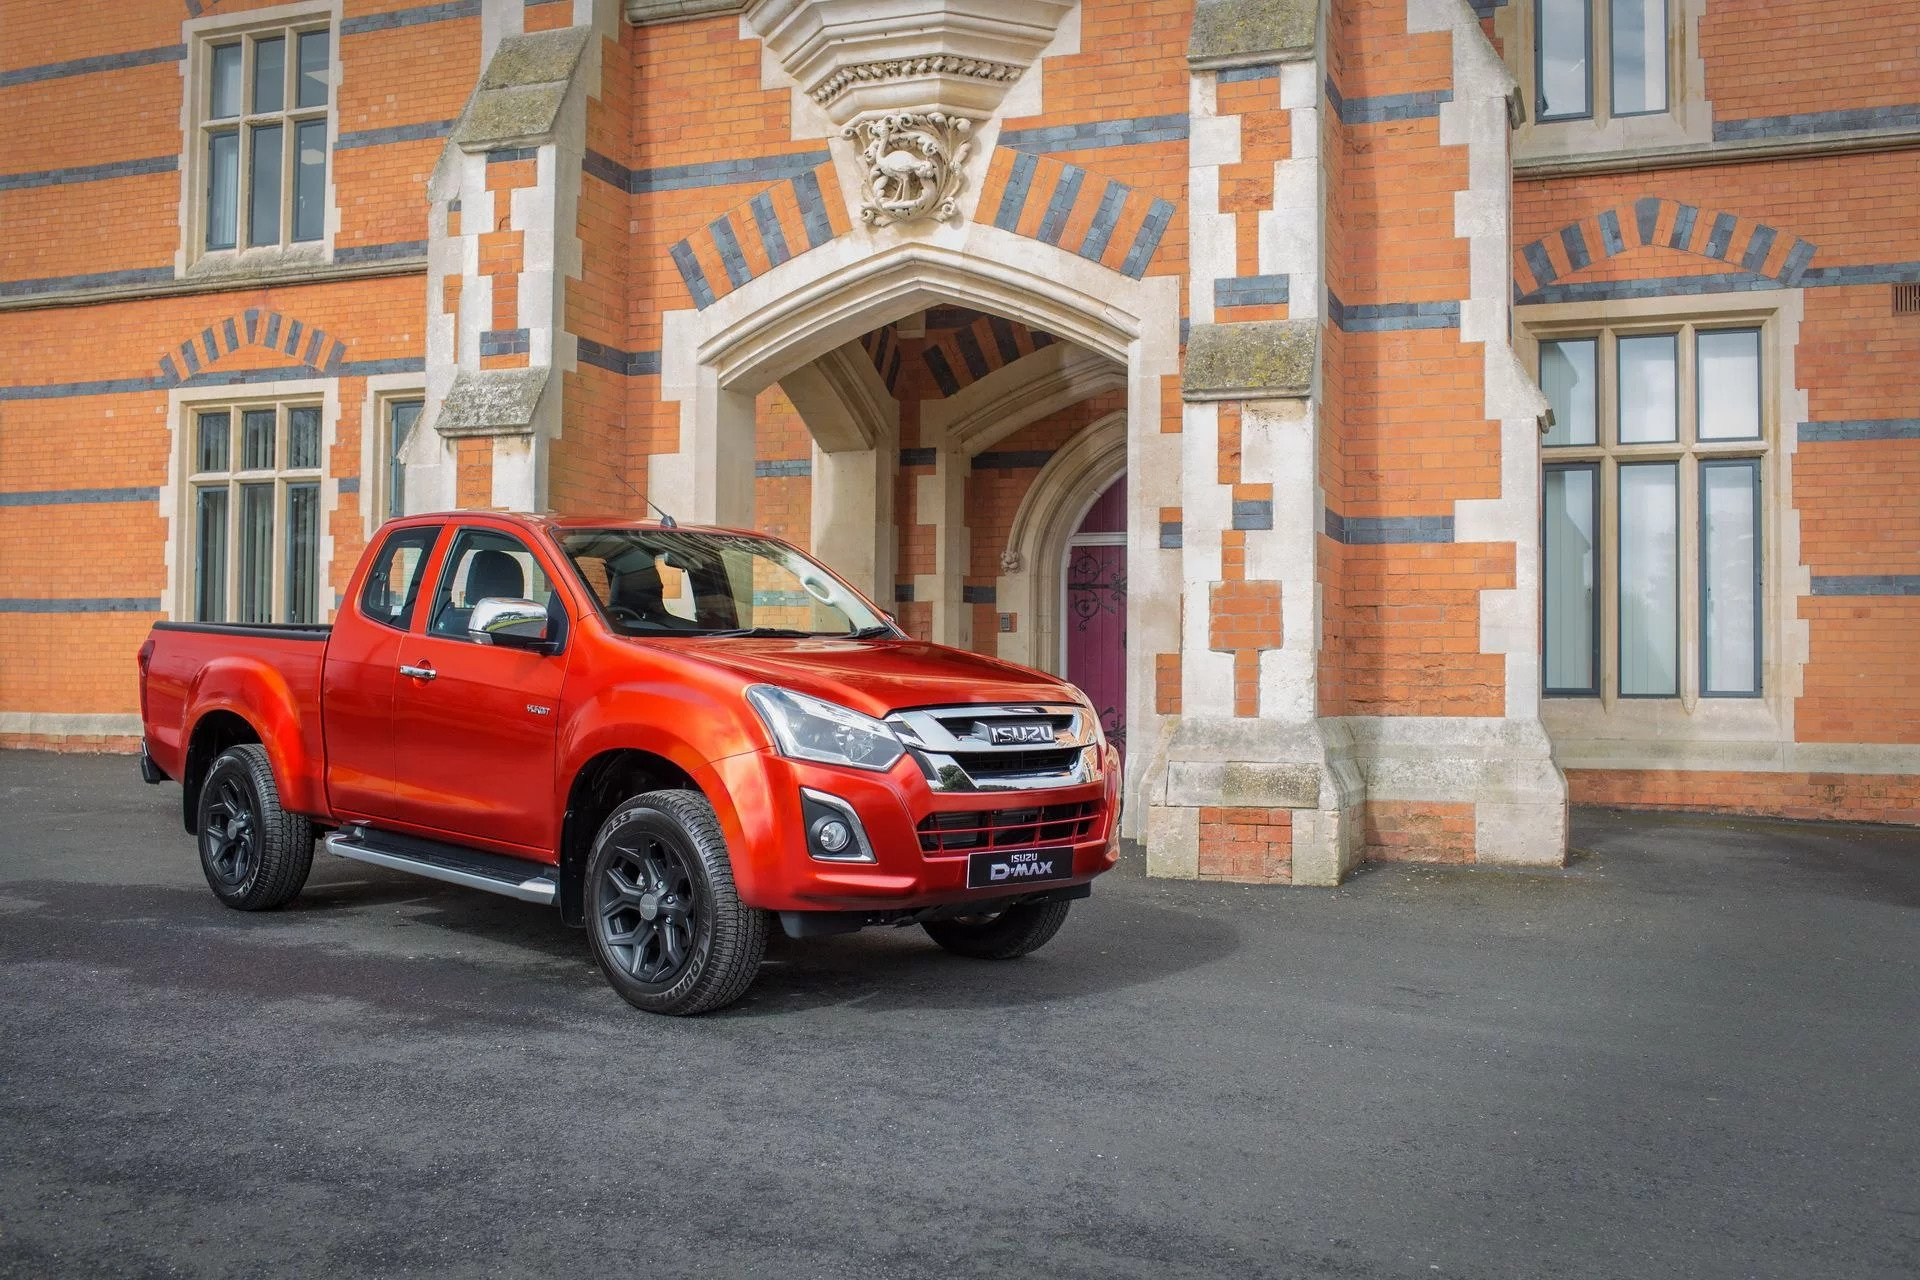 isuzu d-max gains yukon luxe extended cab version at cv show 2018